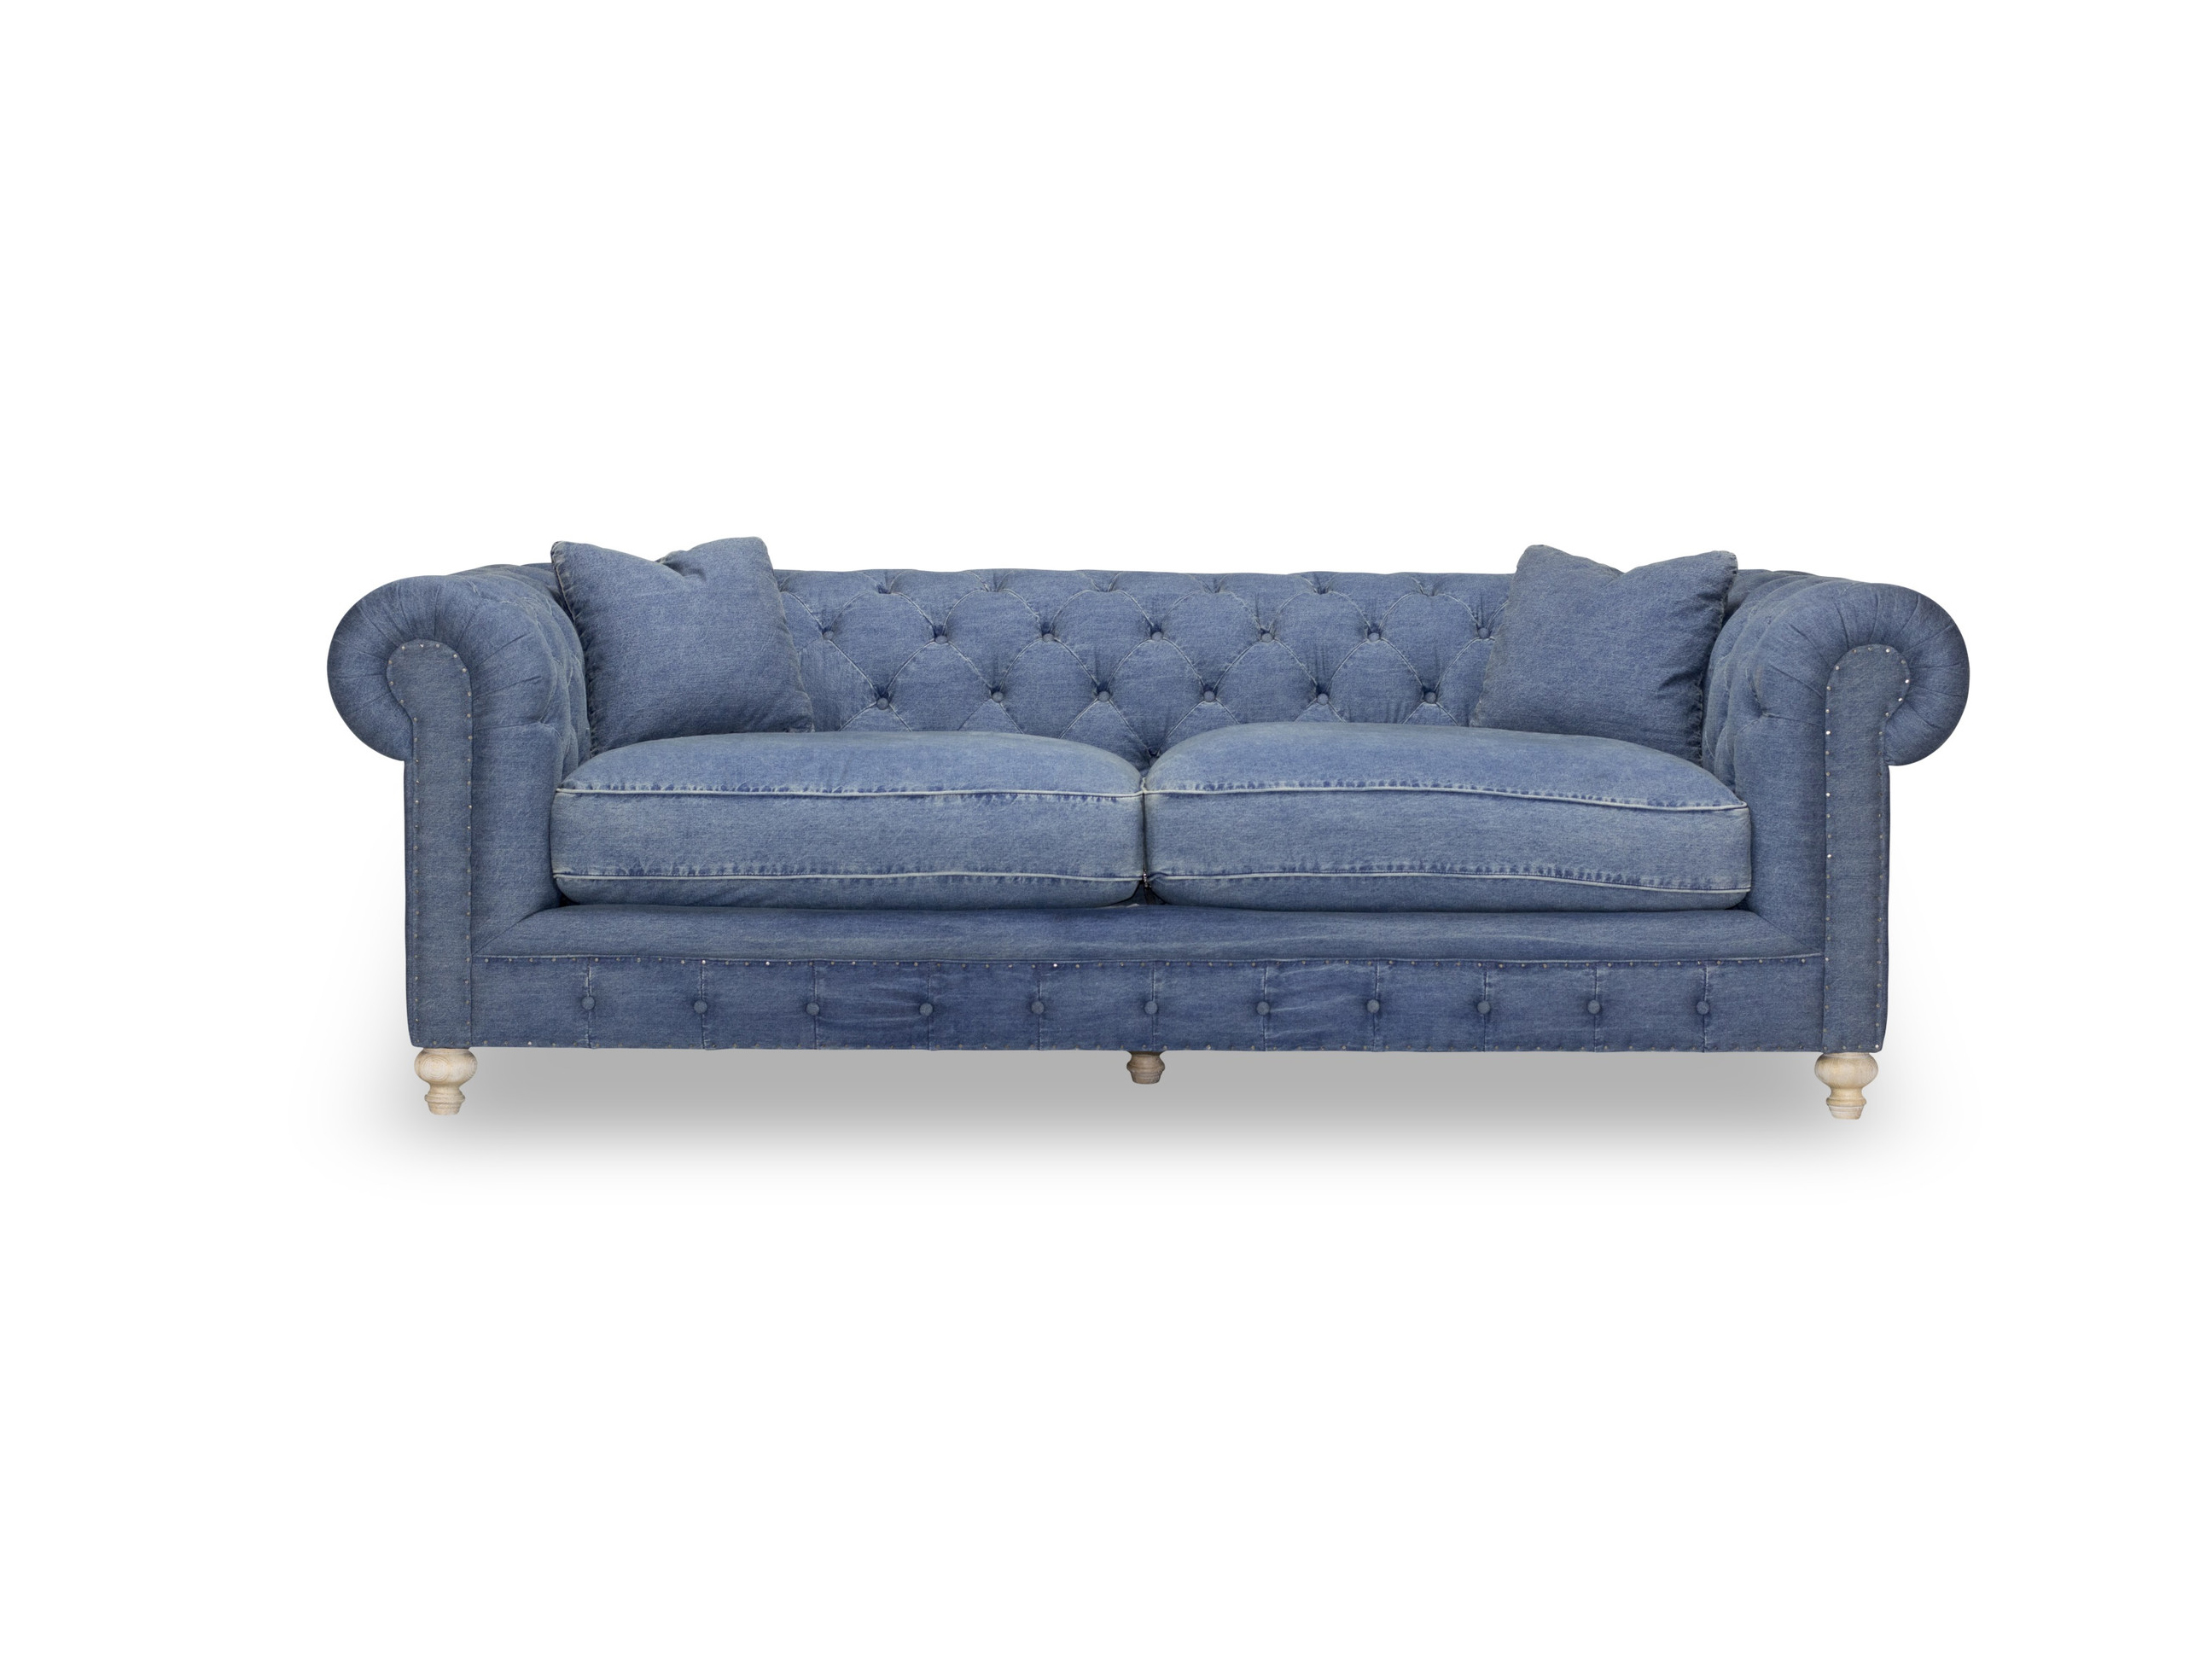 Greenwich Blue Denim 96 Tufted Sofa